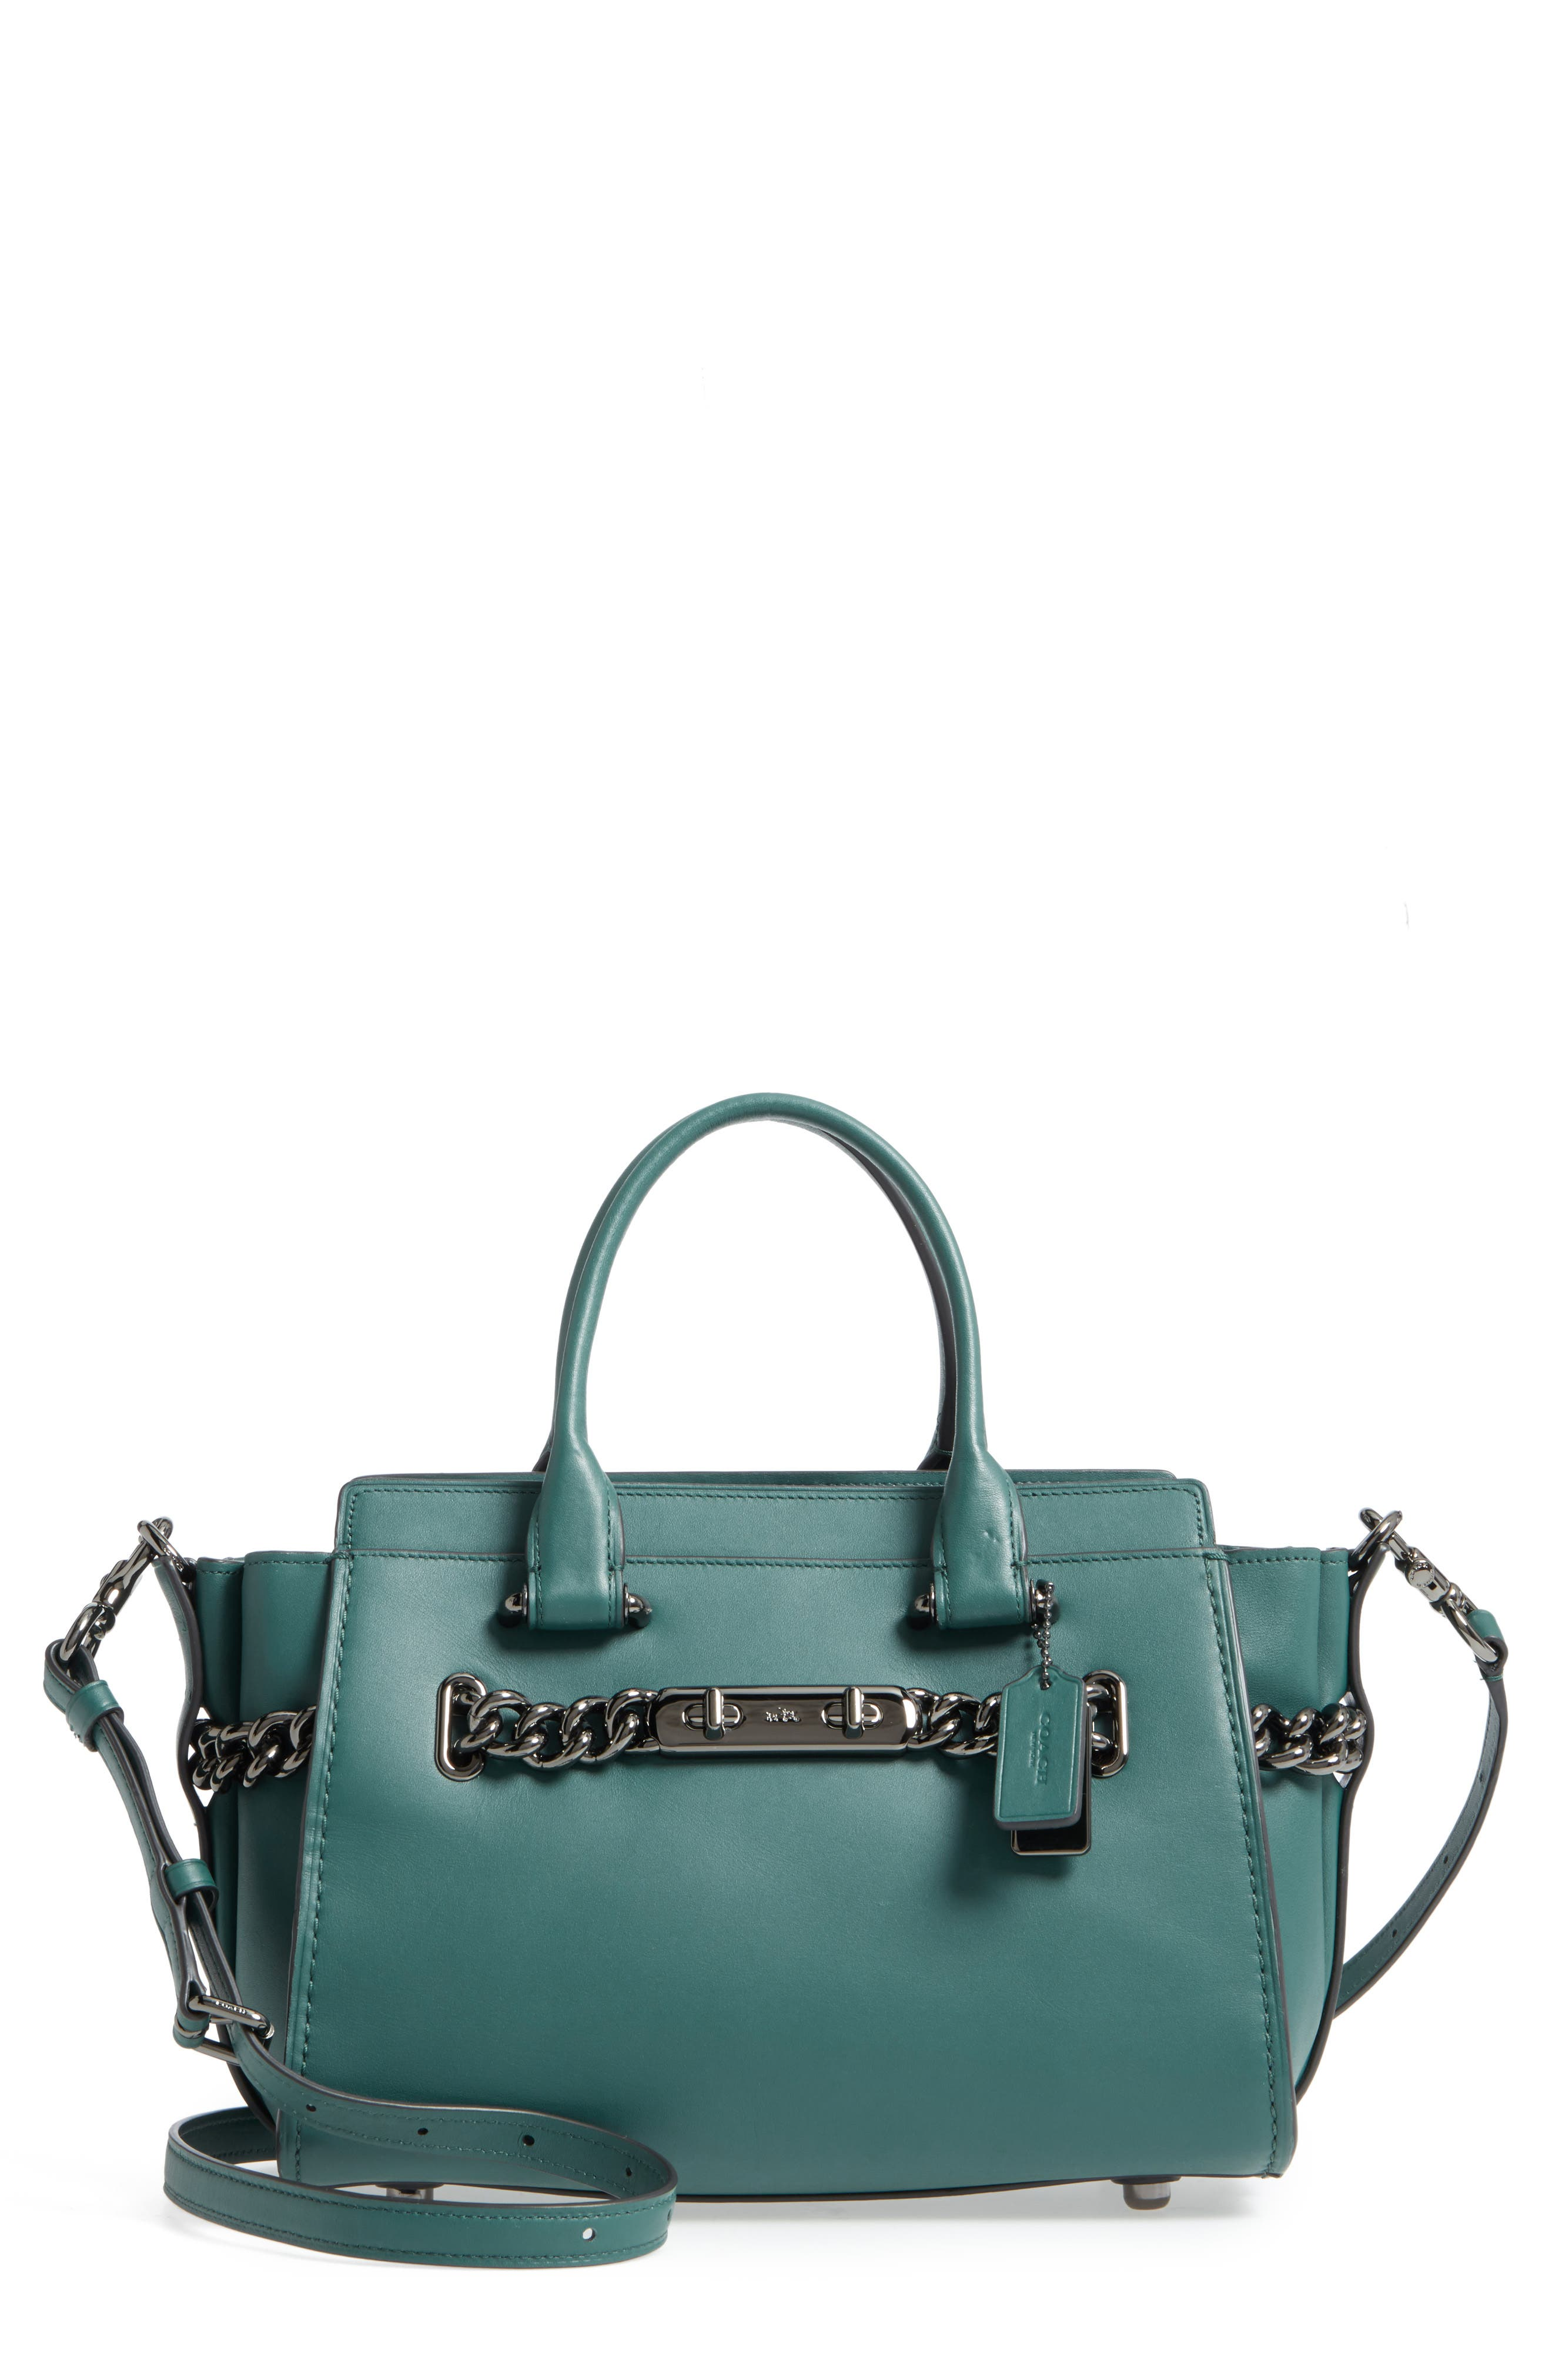 ID Bracelet Swagger 27 Calfskin Leather Satchel,                         Main,                         color, Dark Turquoise